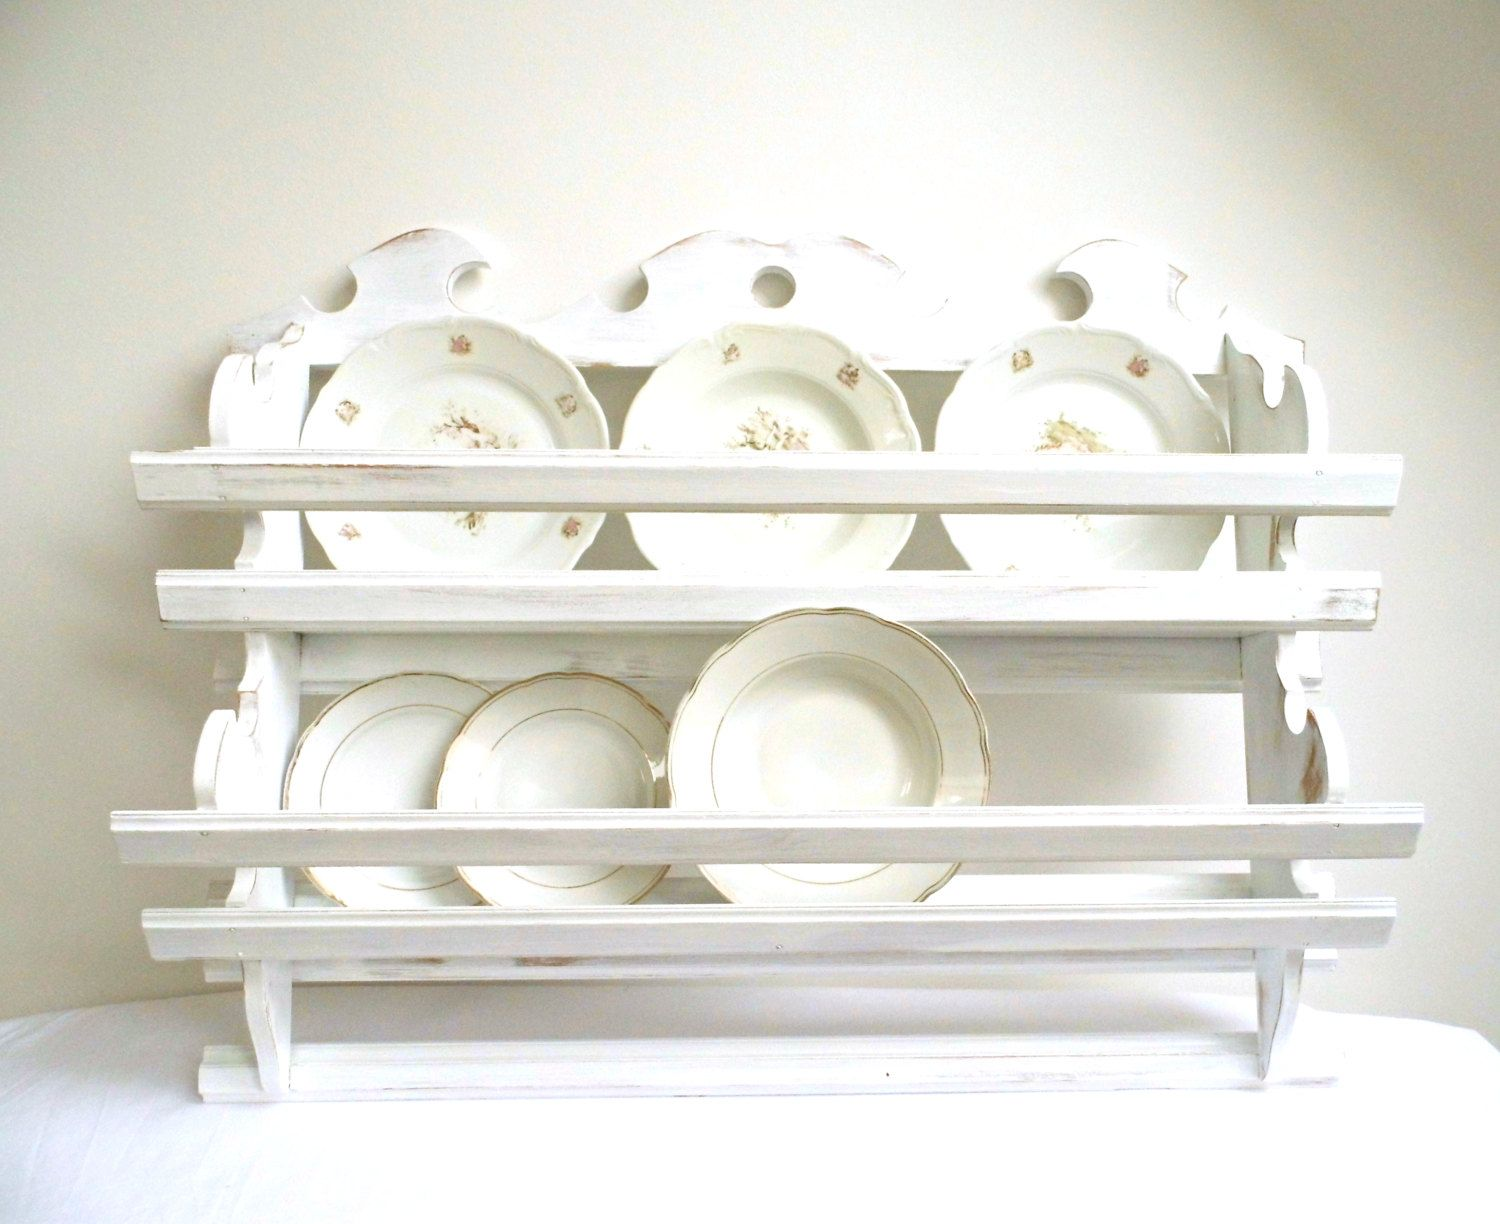 Vintage Plate Rack Wall Holder Tea Cup Shelf Storage